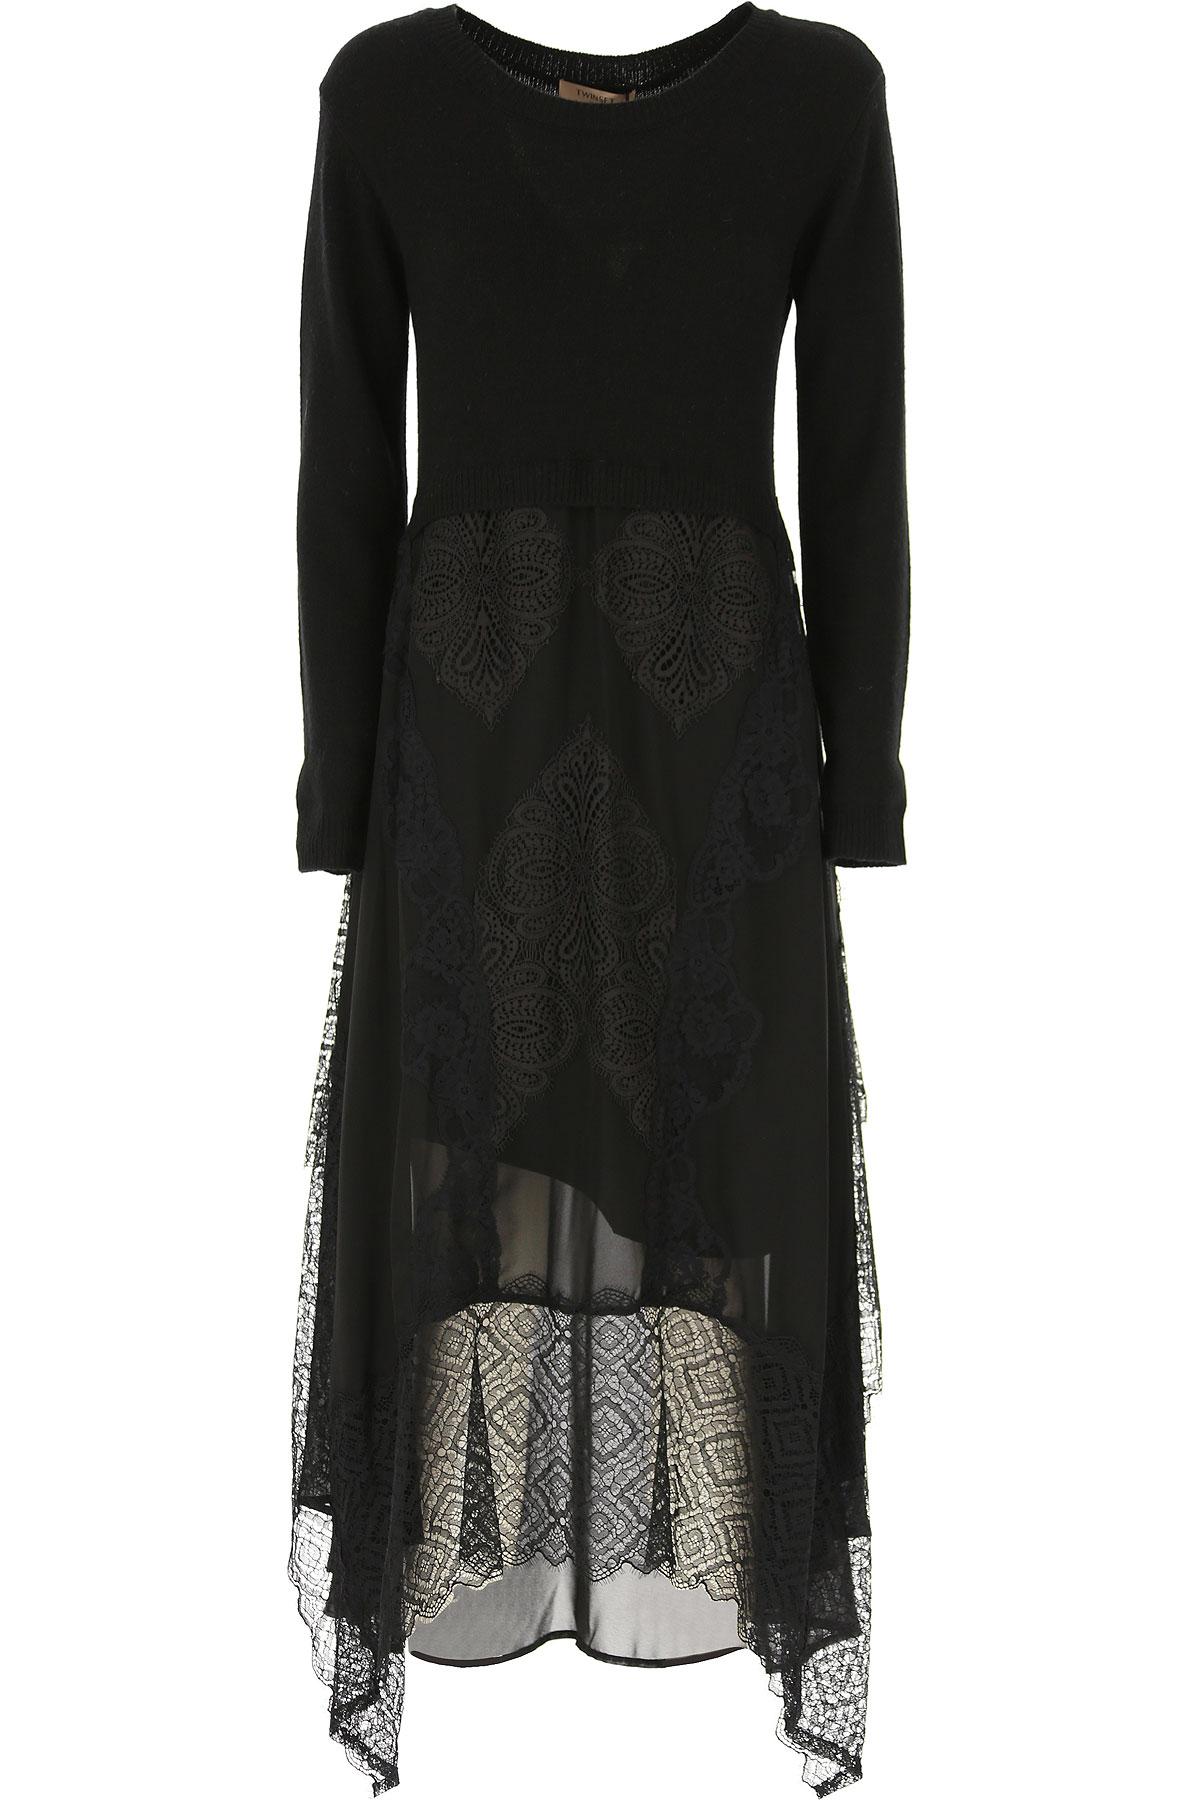 Twin Set by Simona Barbieri Dress for Women, Evening Cocktail Party On Sale, Black, polyester, 2019, 4 6 8